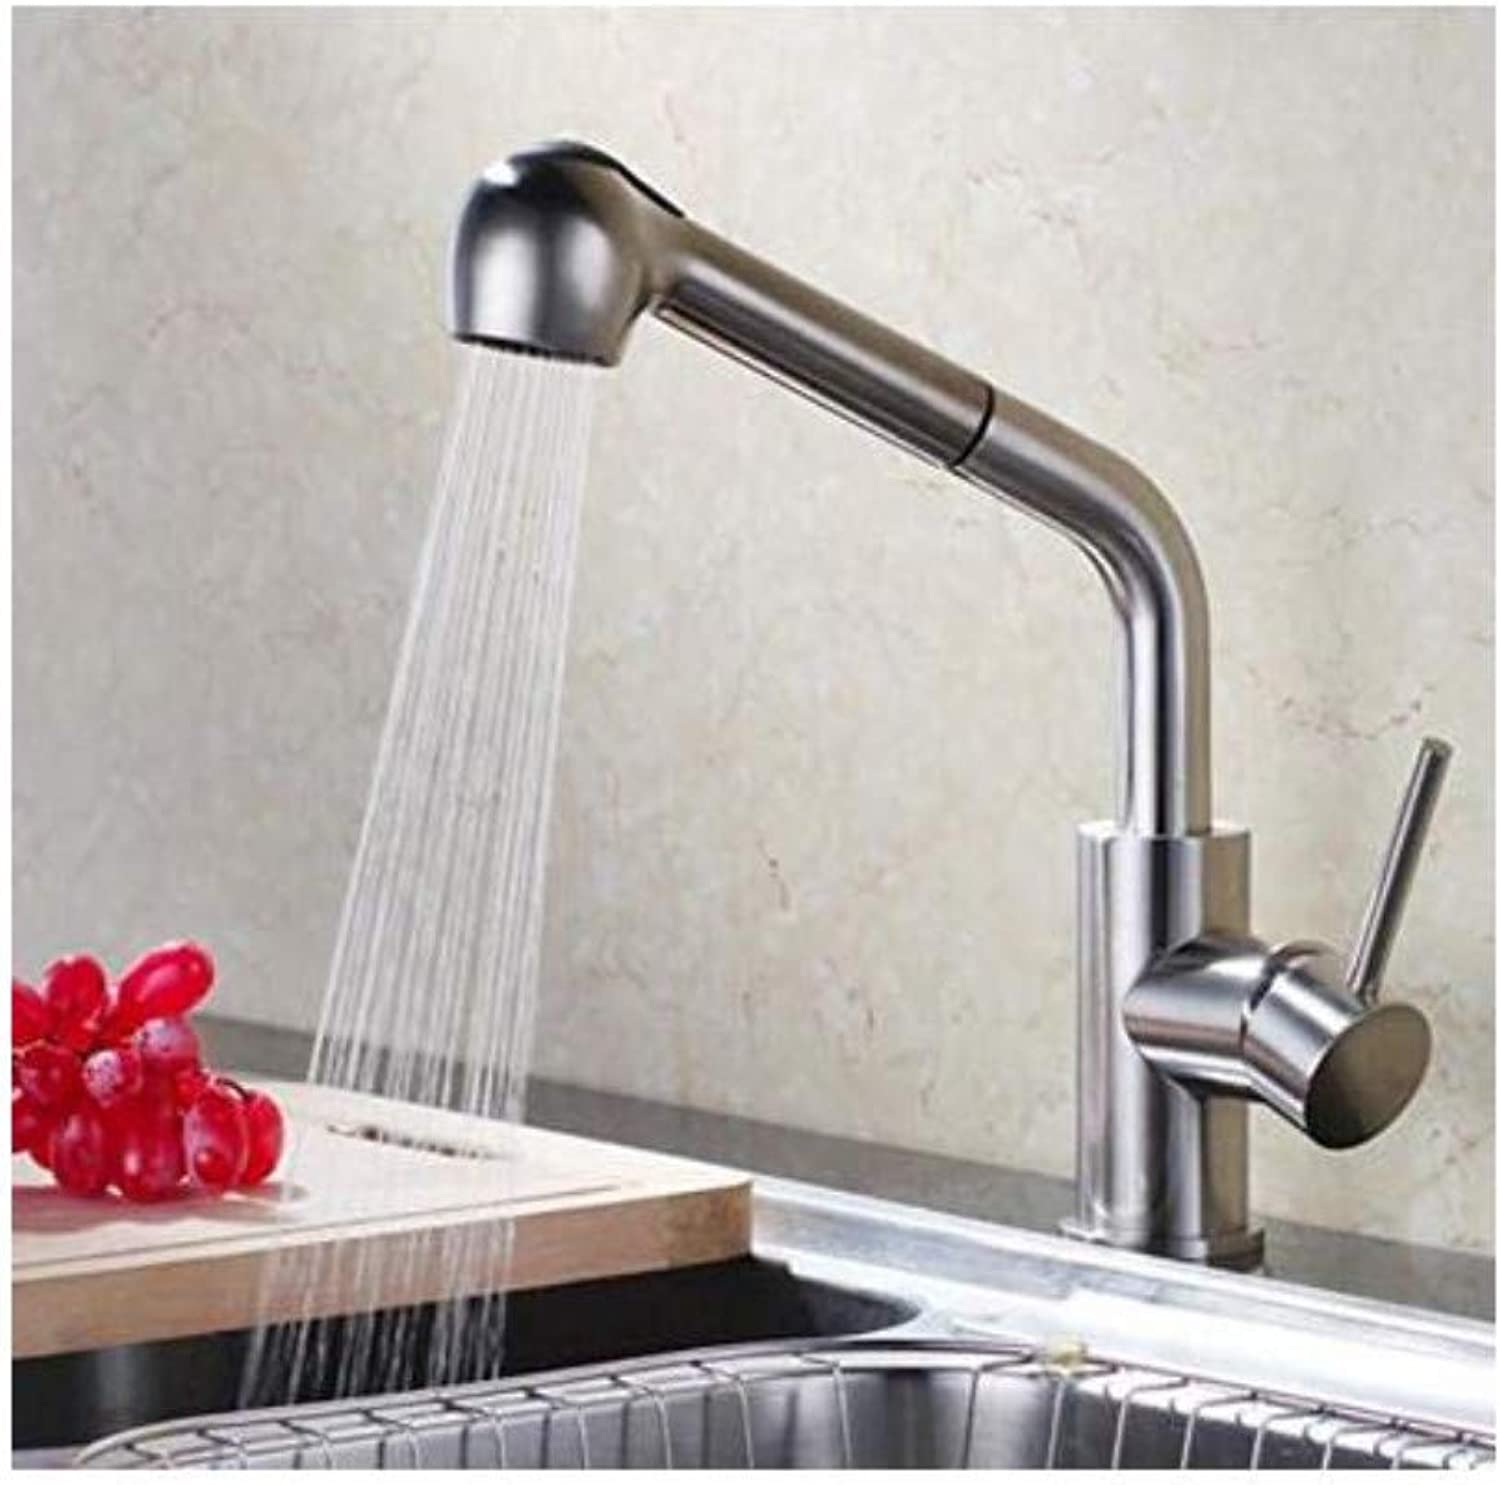 Kitchen Brass Hot and Cold Water Faucet Washbasin Mixer Steel Pull Out Spring Kitchen Faucet Swivel Spout Vessel Sink Mixer Tap